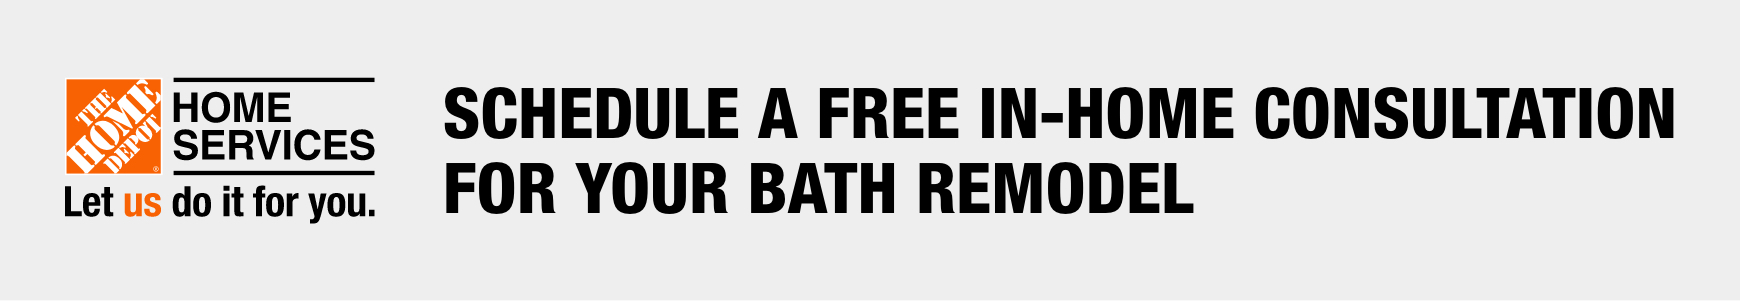 Schedule a free in-home consulation for your bath remodel